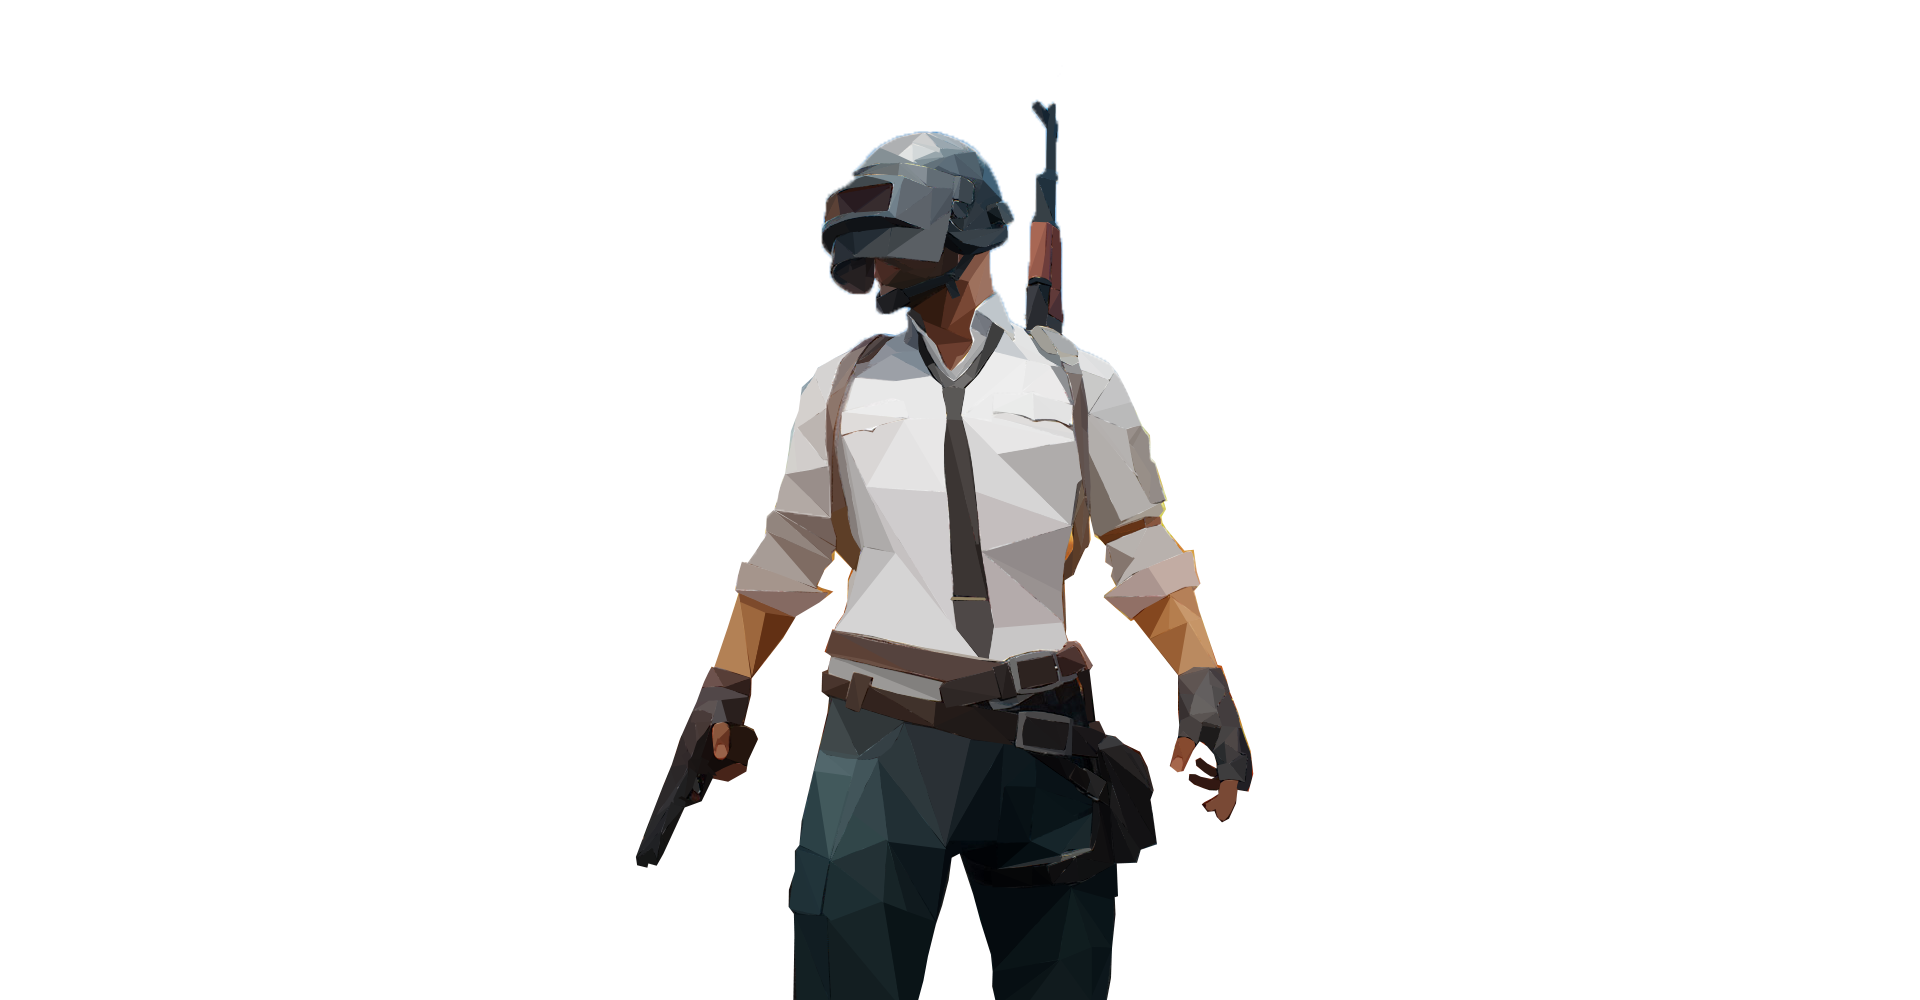 Third Low-Poly Art (PUBG)